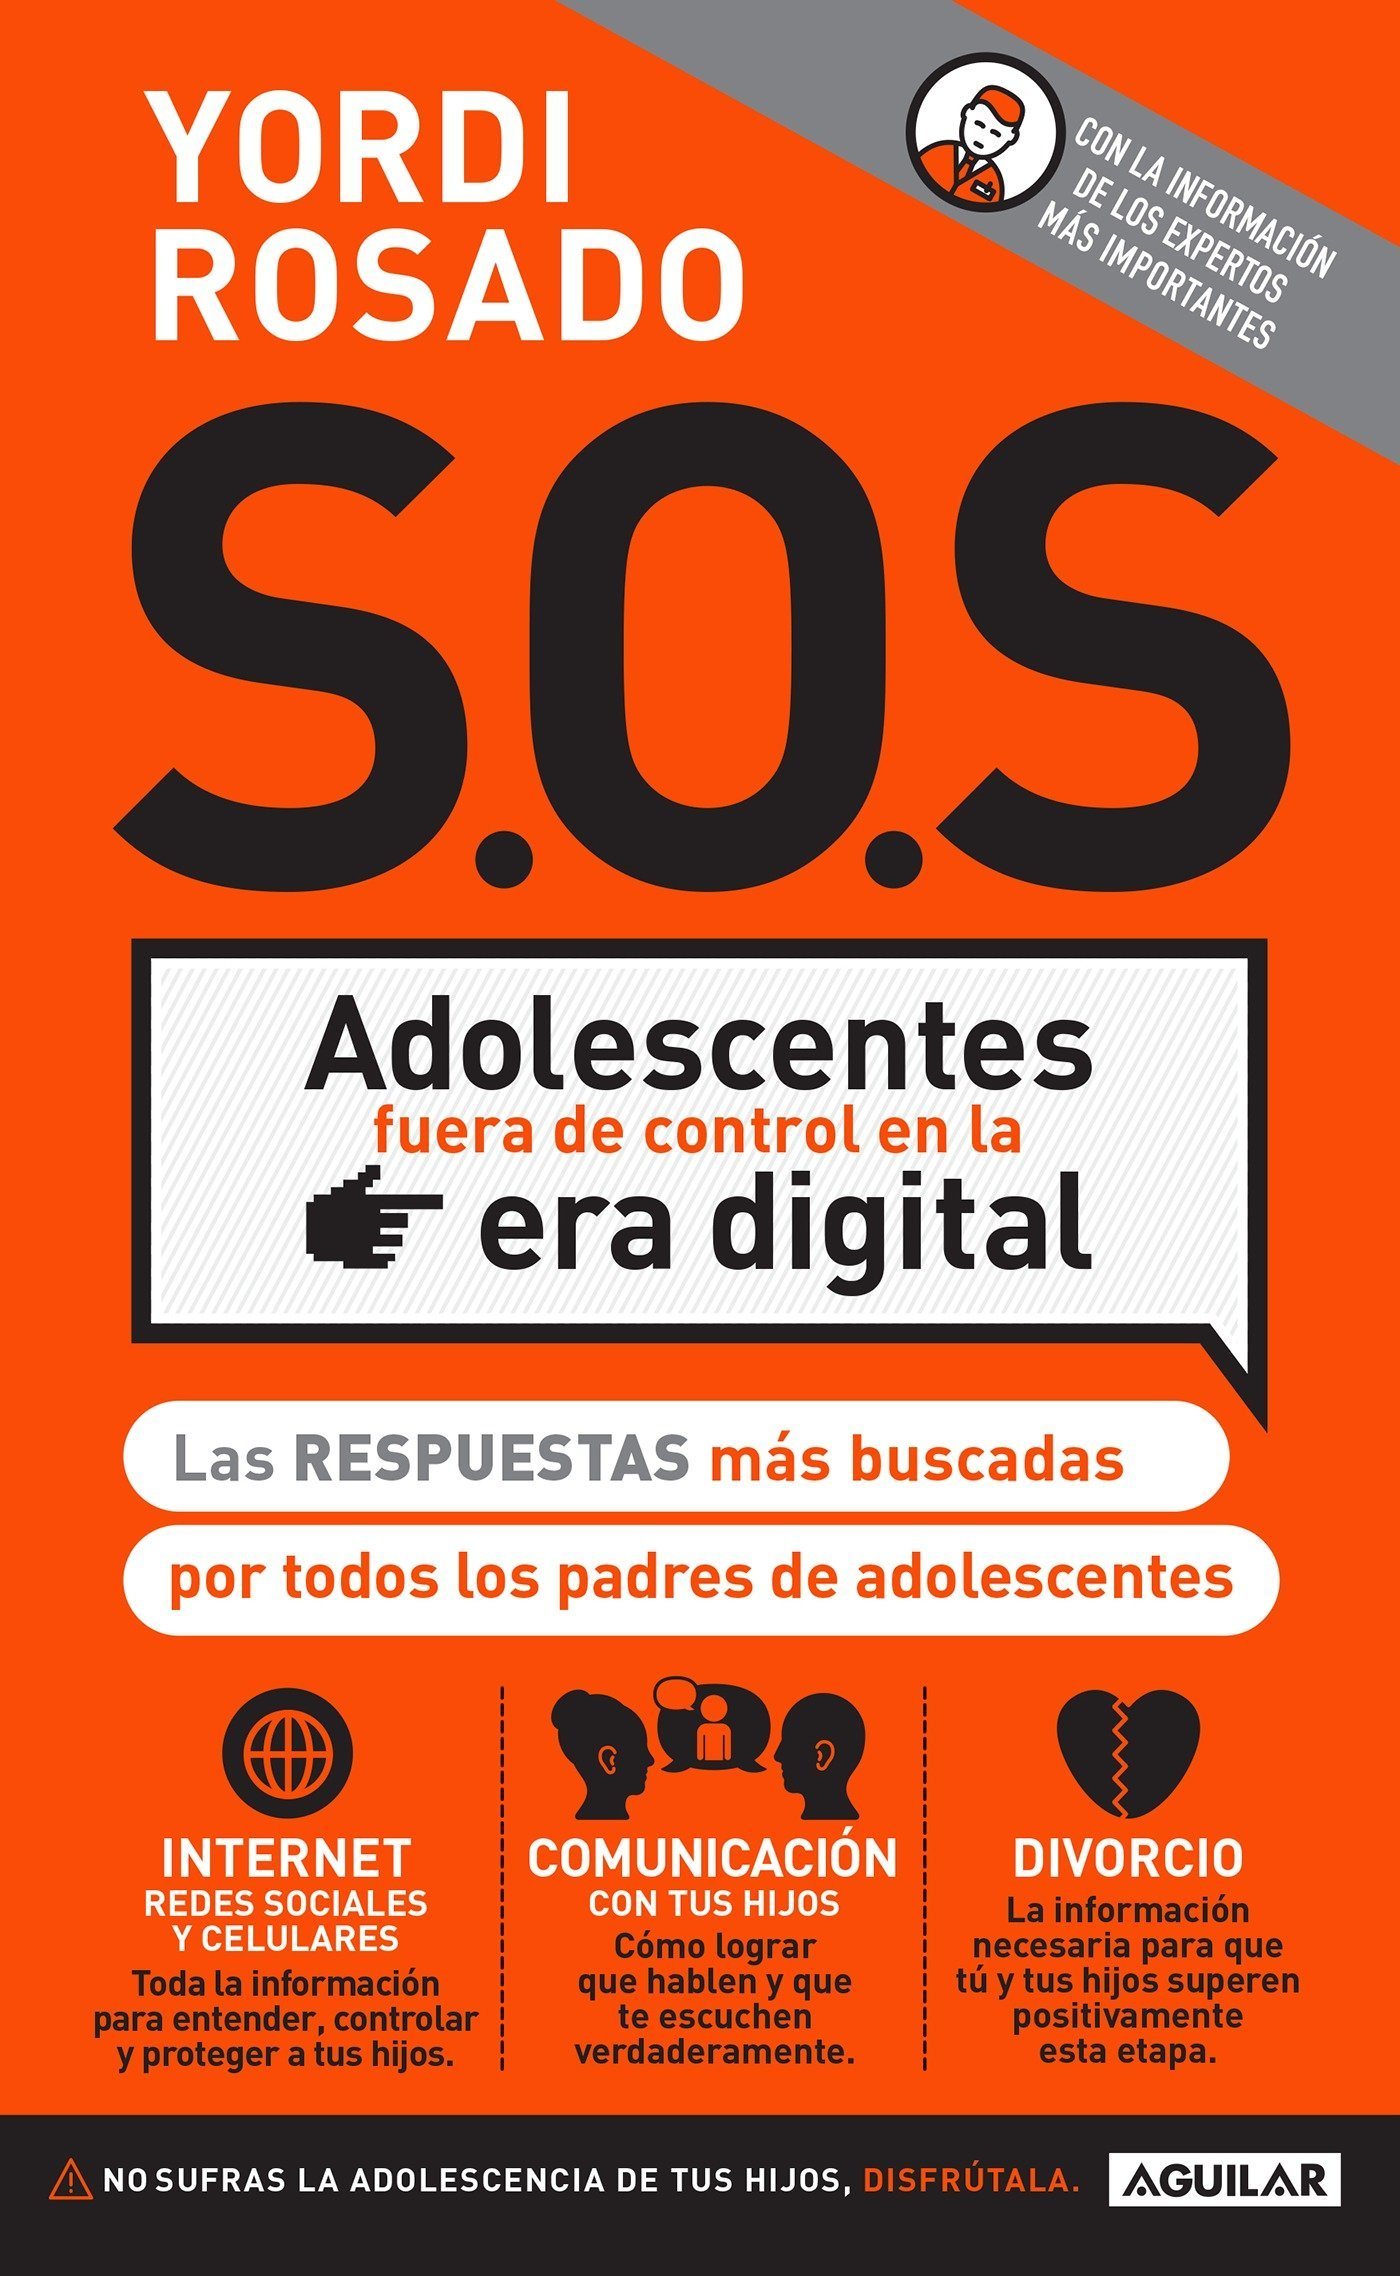 S.O.S Adolescentes fuera de control en la era digital (Spanish Edition): Yordi Rosado: 9781941999530: Amazon.com: Books